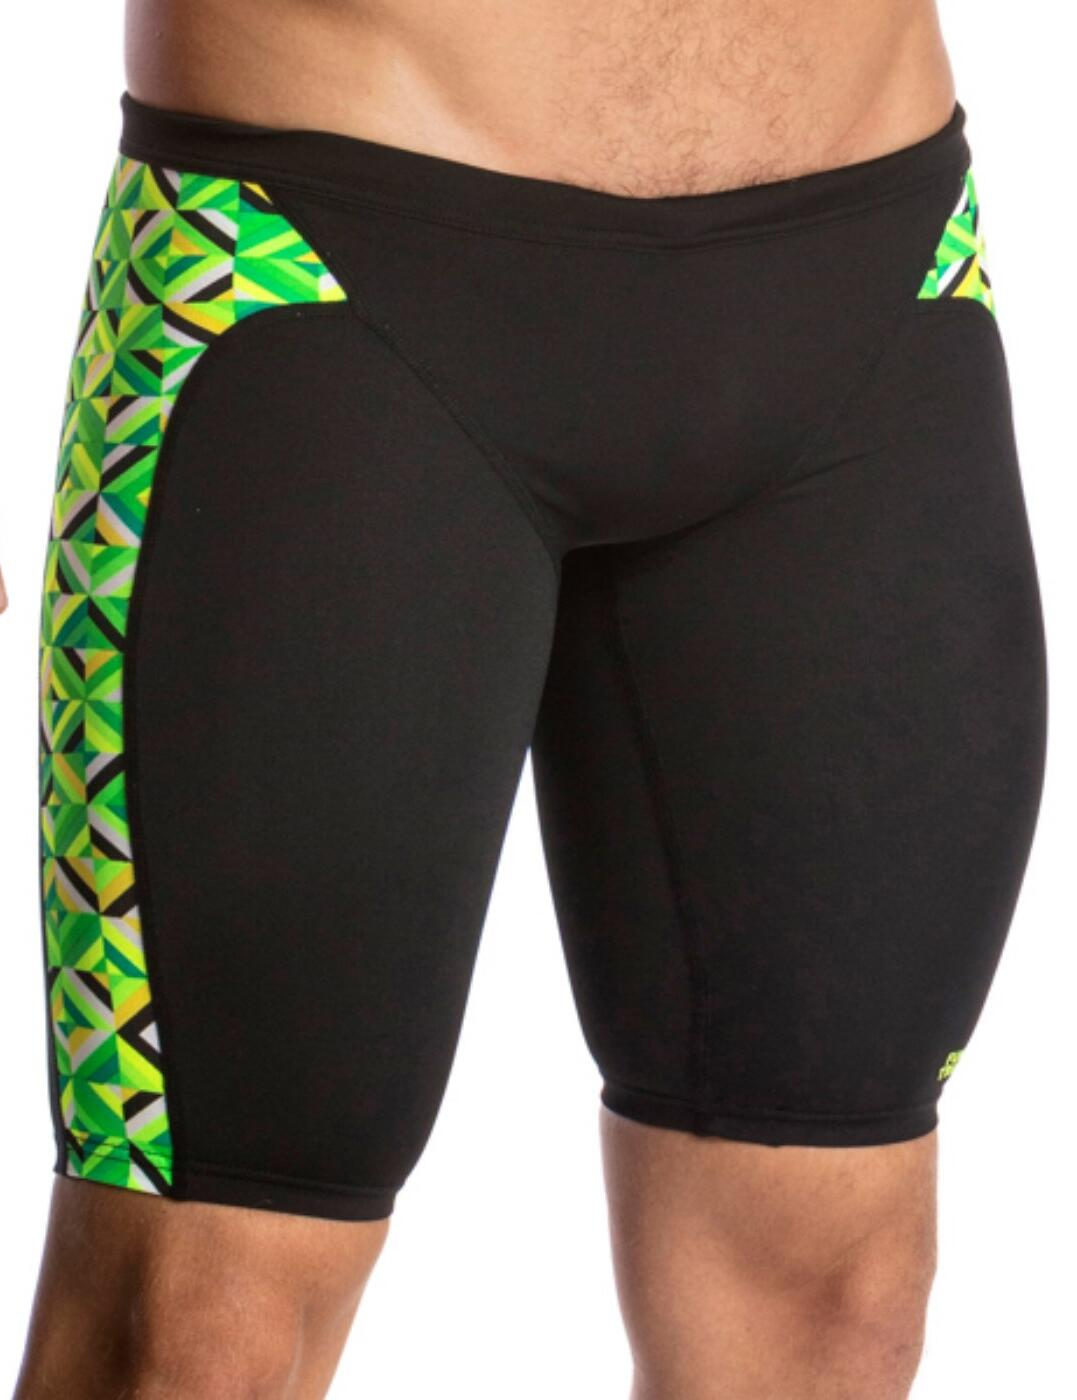 FT37M01627 Funky Trunks Mens Radioactive Training Jammers - FT37M01627 Radioactive